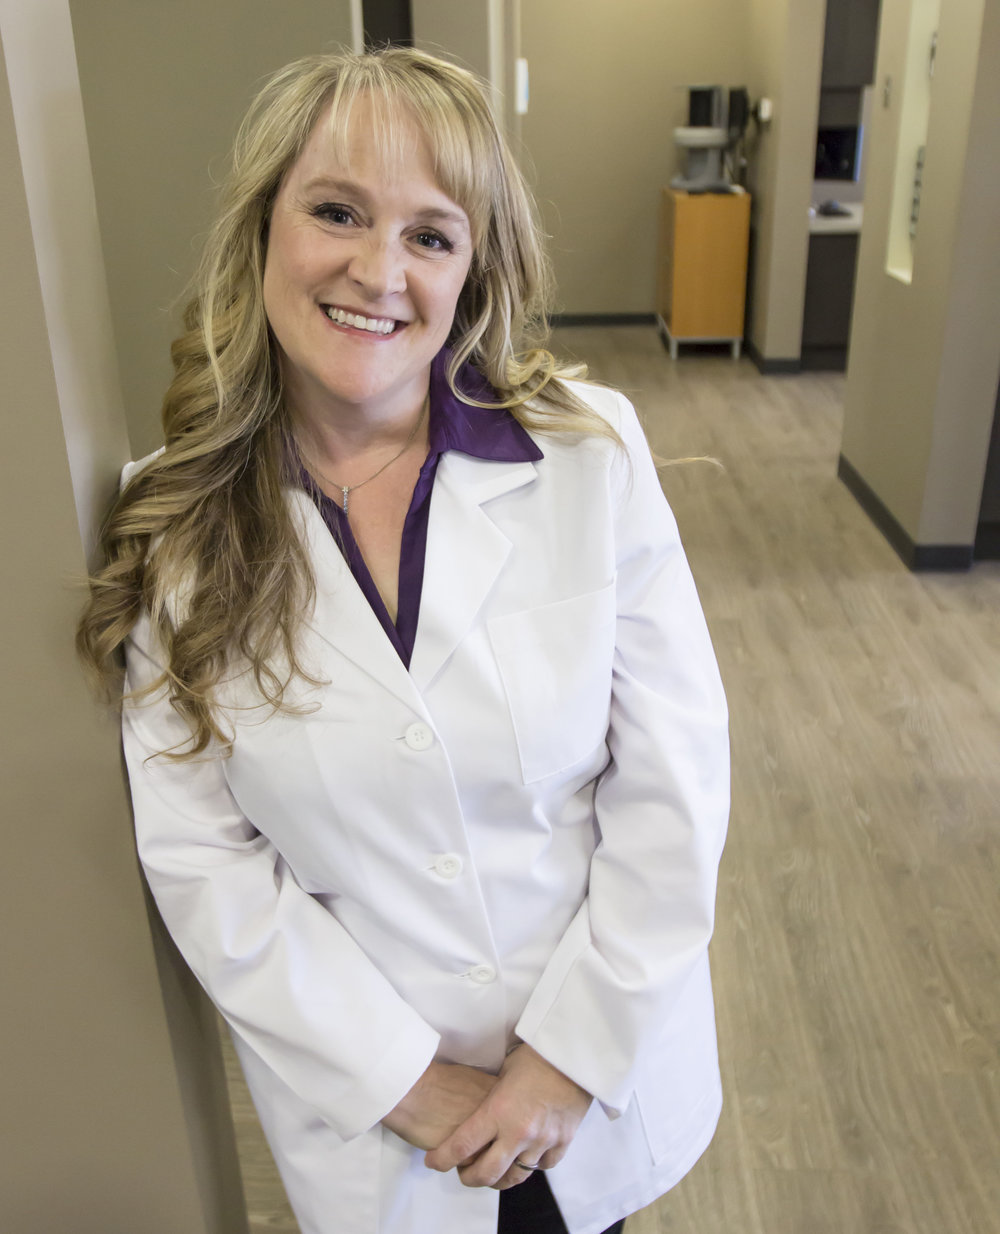 Meet Dr. Rebecca Temp at Mountain View Family Dental in Mesa, AZ.